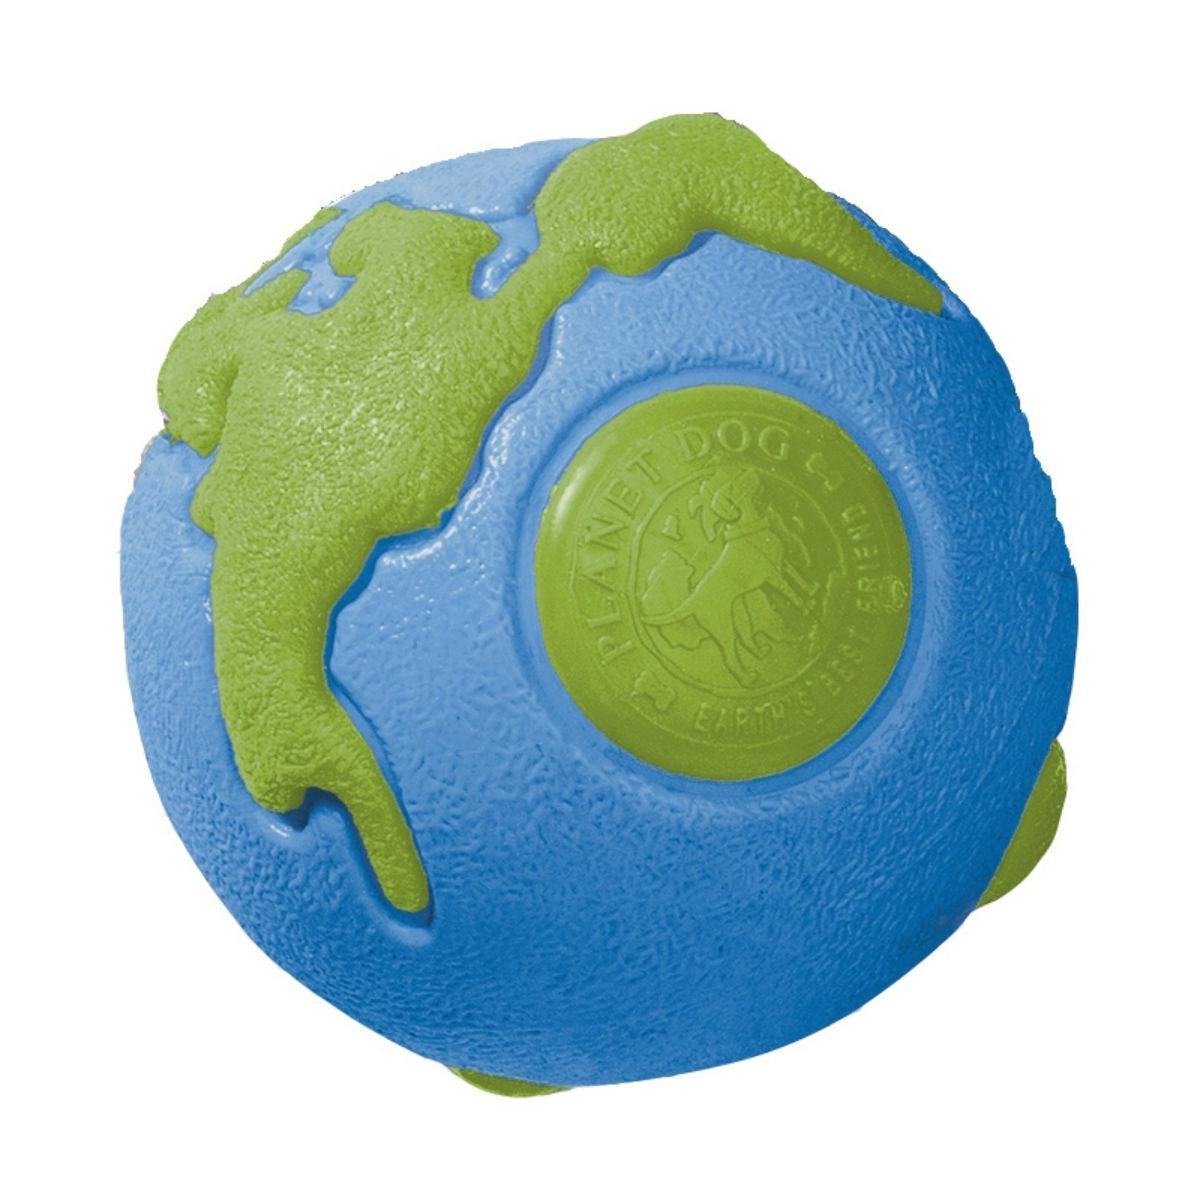 Planet Dog Orbee-Tuff Orbee Ball Dog Toy - Blue and Green